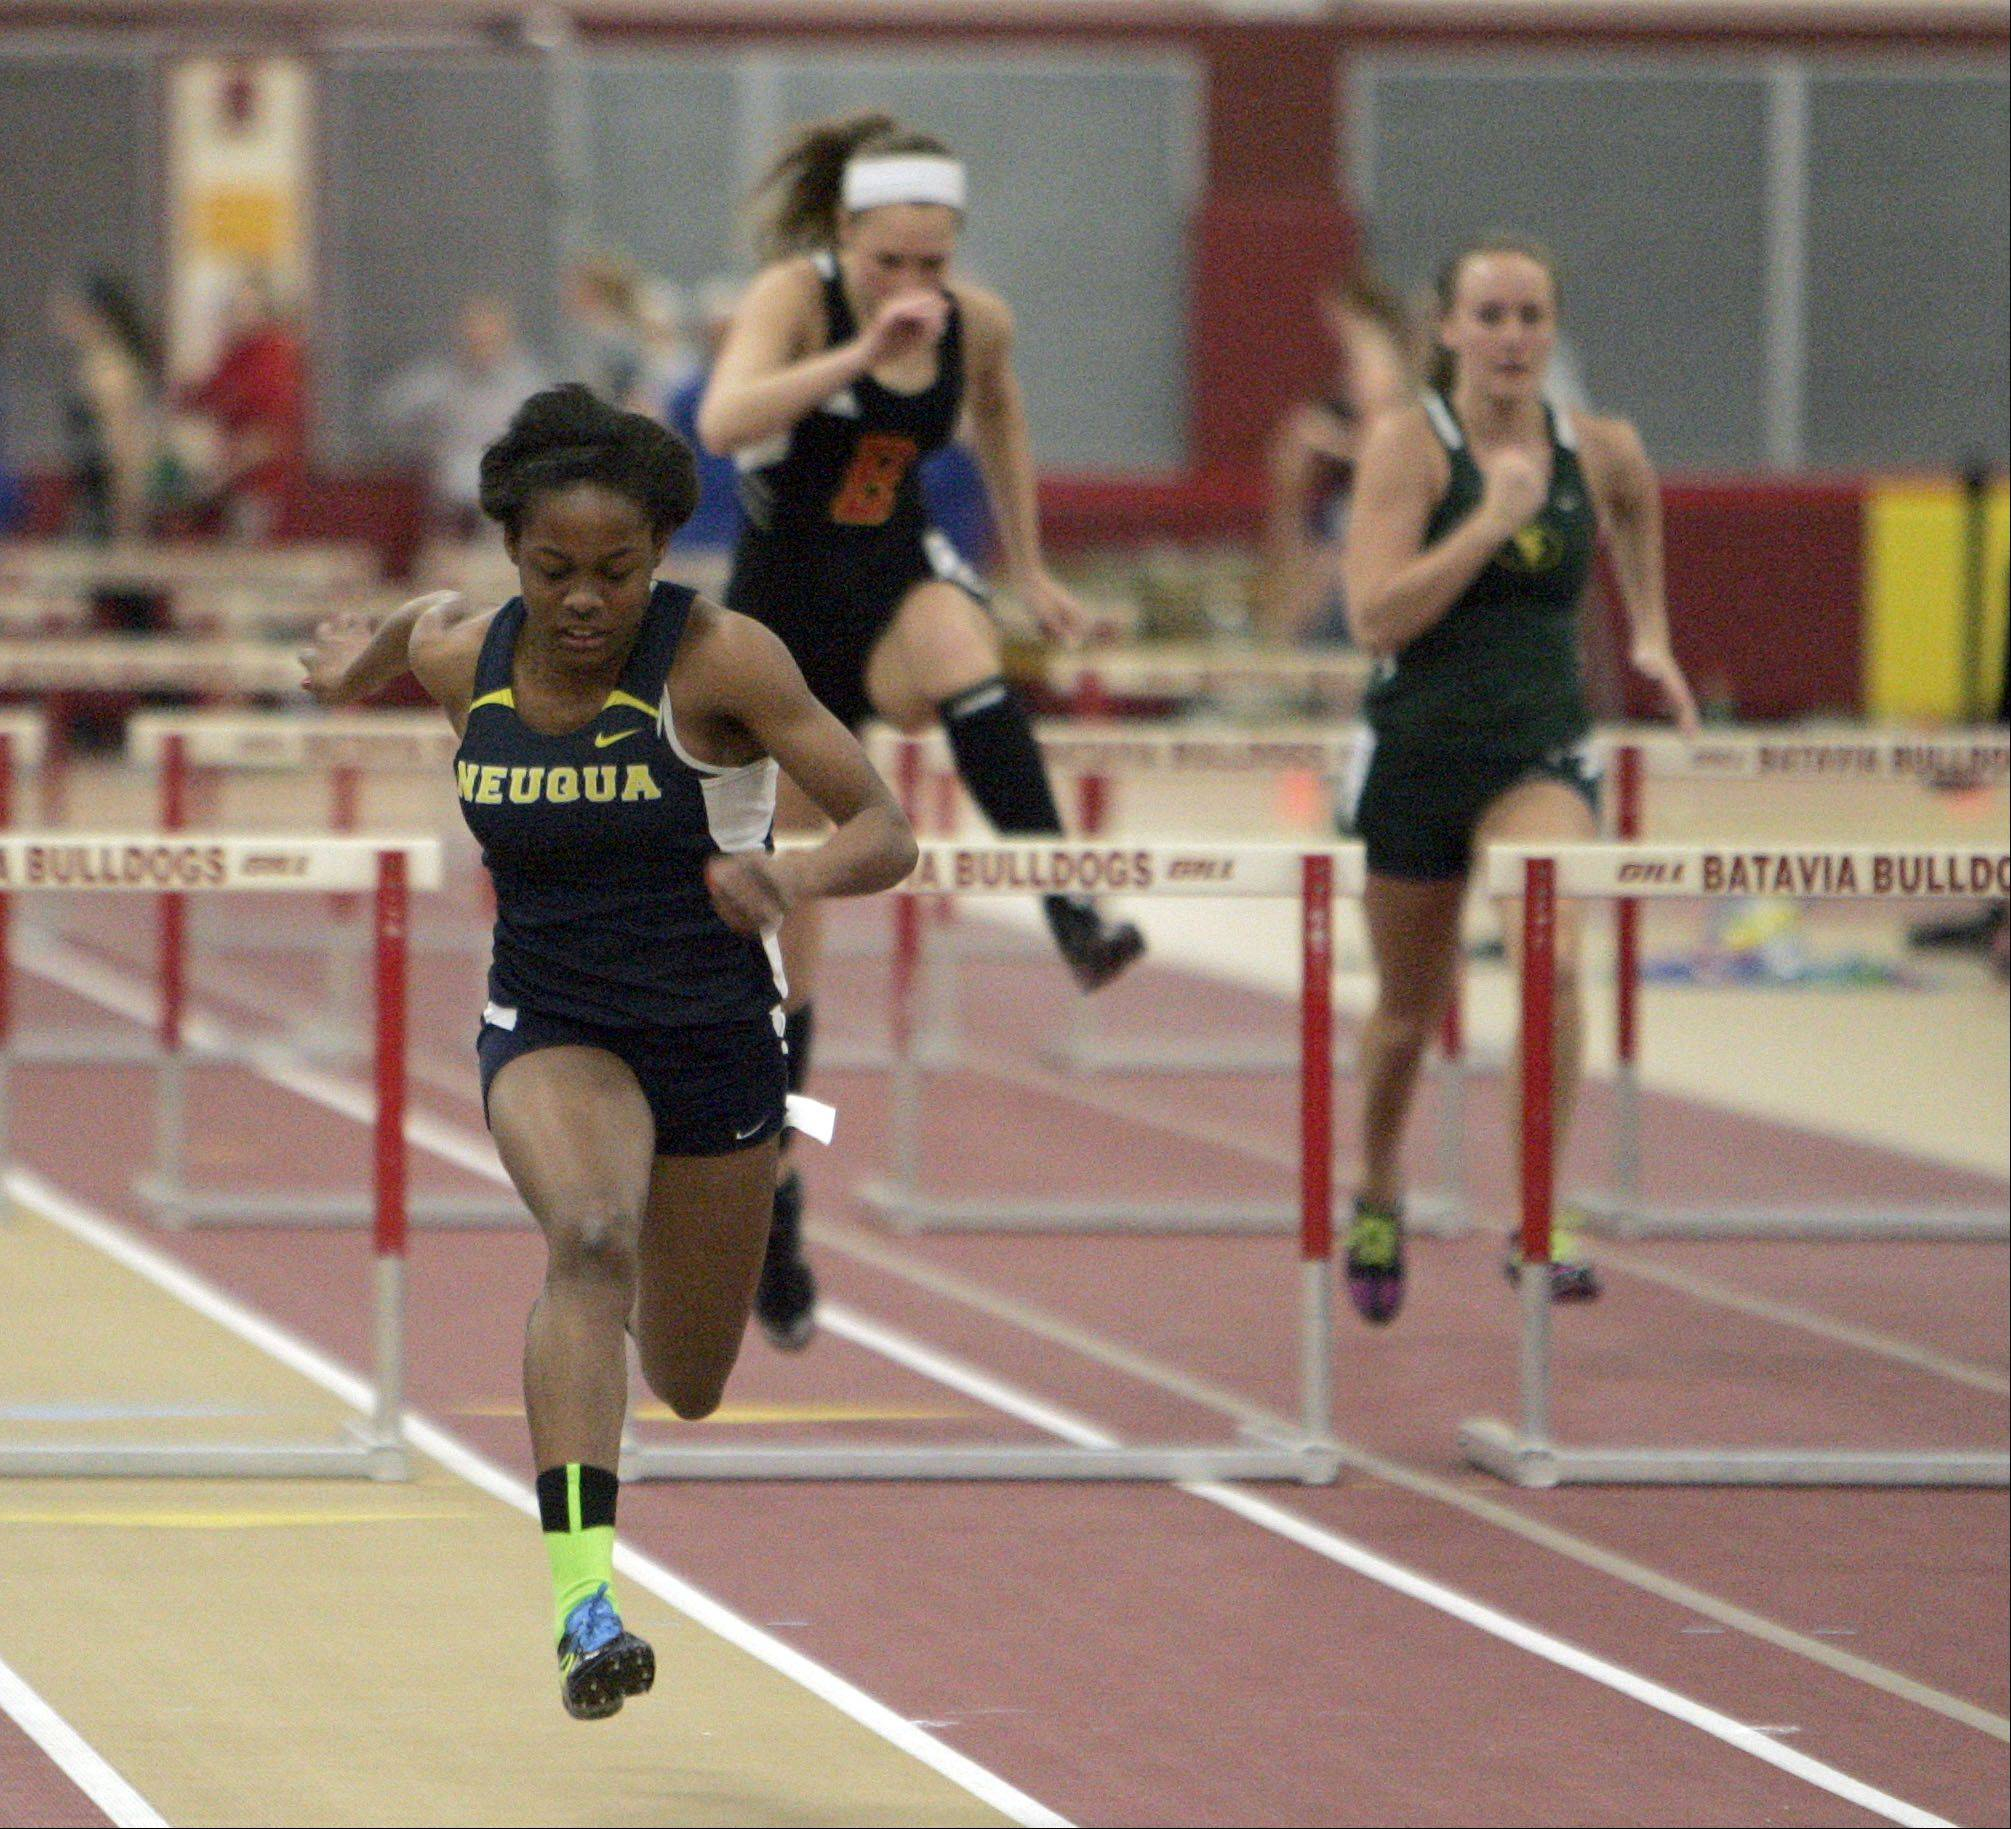 Maya Neal of Neuqua Valley in the 55 meter hurdles during the Upstate Eight Conference indoor track meet at Batavia High School Friday.